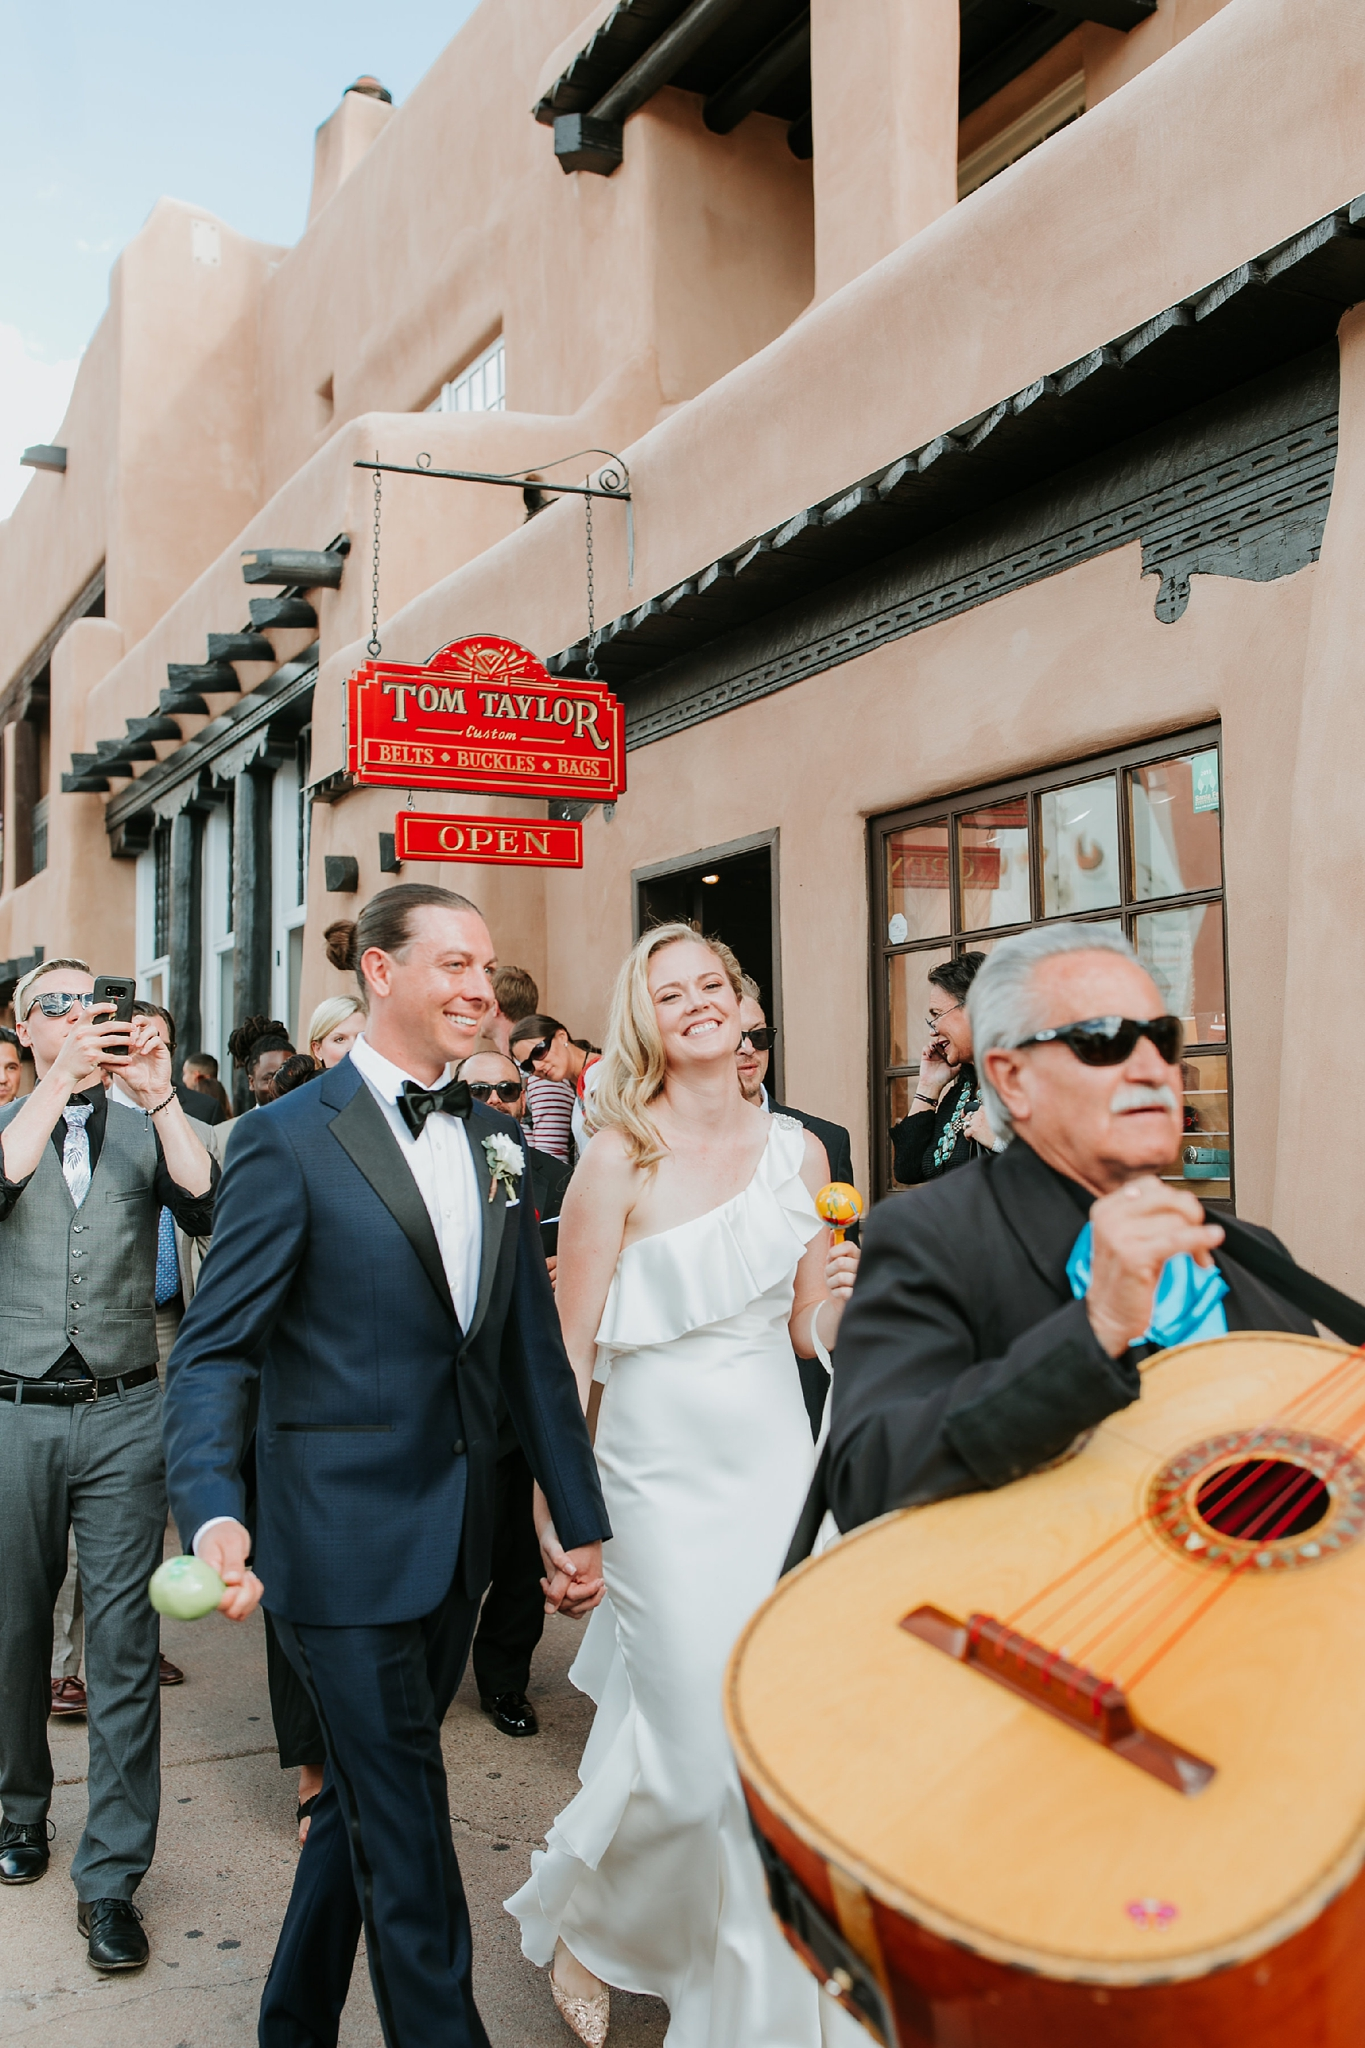 Alicia+lucia+photography+-+albuquerque+wedding+photographer+-+santa+fe+wedding+photography+-+new+mexico+wedding+photographer+-+new+mexico+wedding+-+santa+fe+wedding+-+albuquerque+wedding+-+southwest+wedding+traditions_0070.jpg